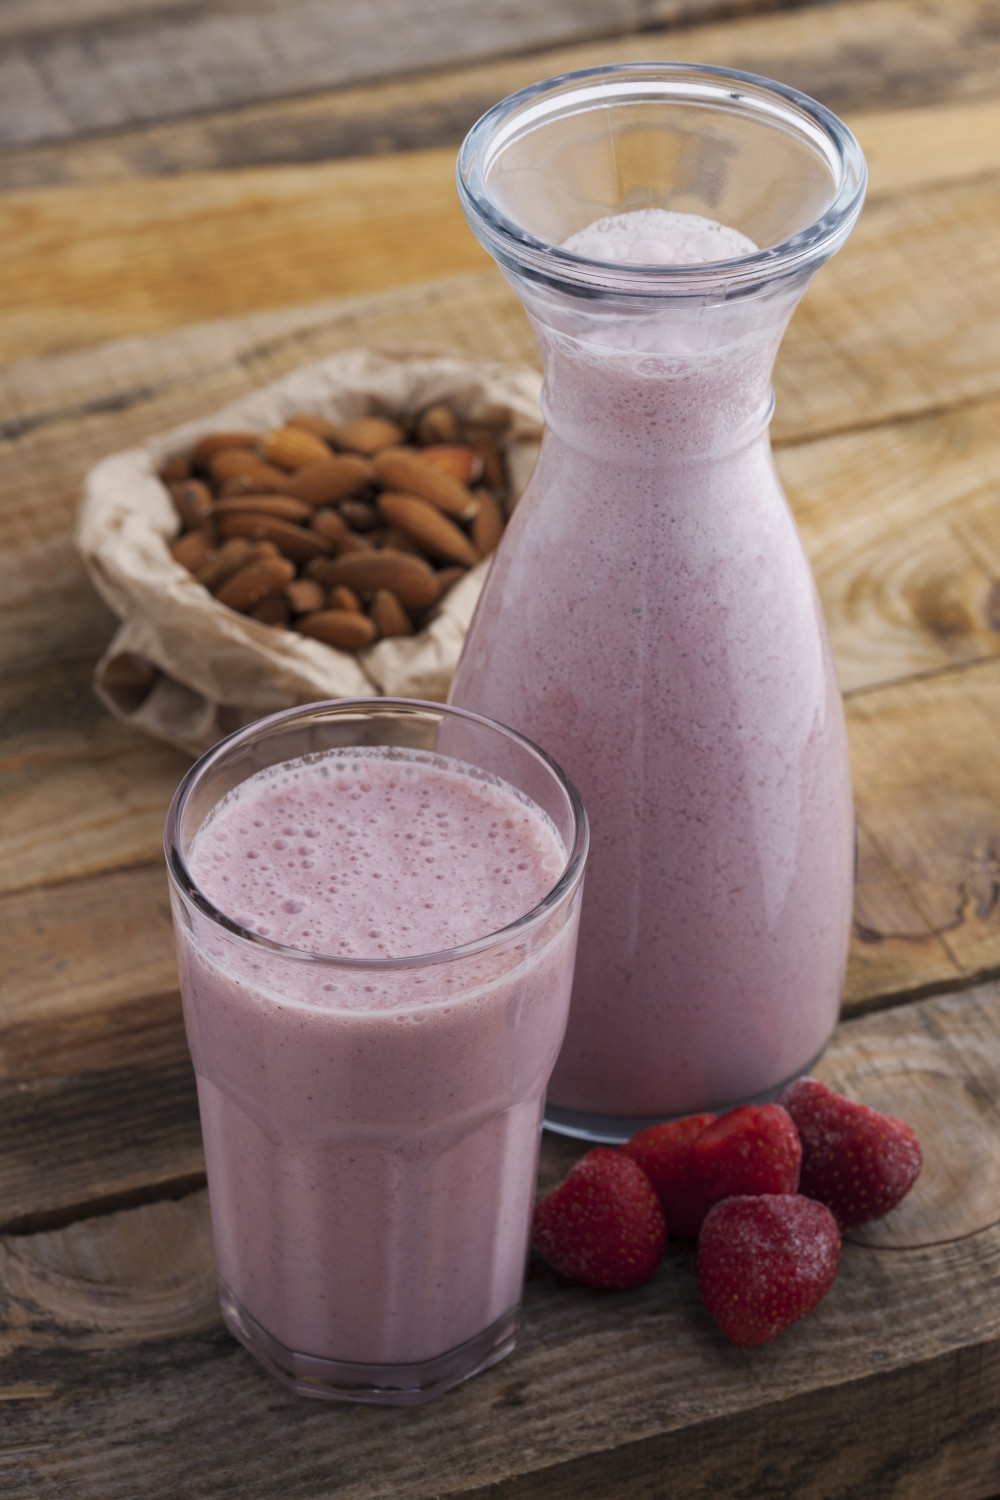 Healthy Smoothies With Almond Milk  Strawberry Mango and Almond Smoothie All Nutribullet Recipes